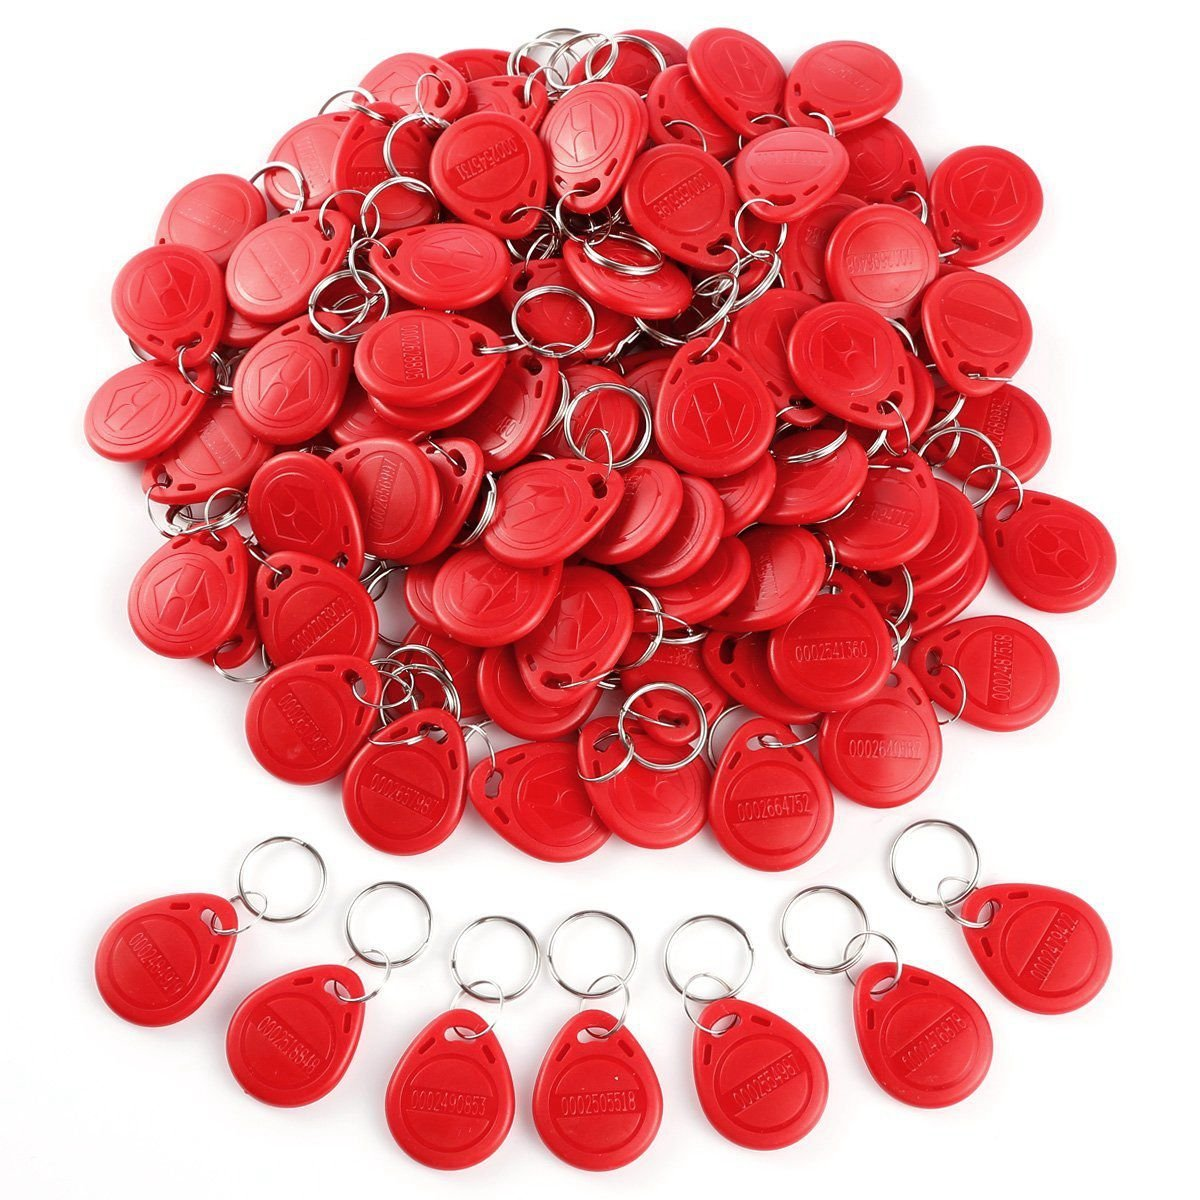 TOOGOO 100pcs Cle ID RFID Remote Control Identification Card Door System Entry Access Tag Badge token lock 125KHZ Red